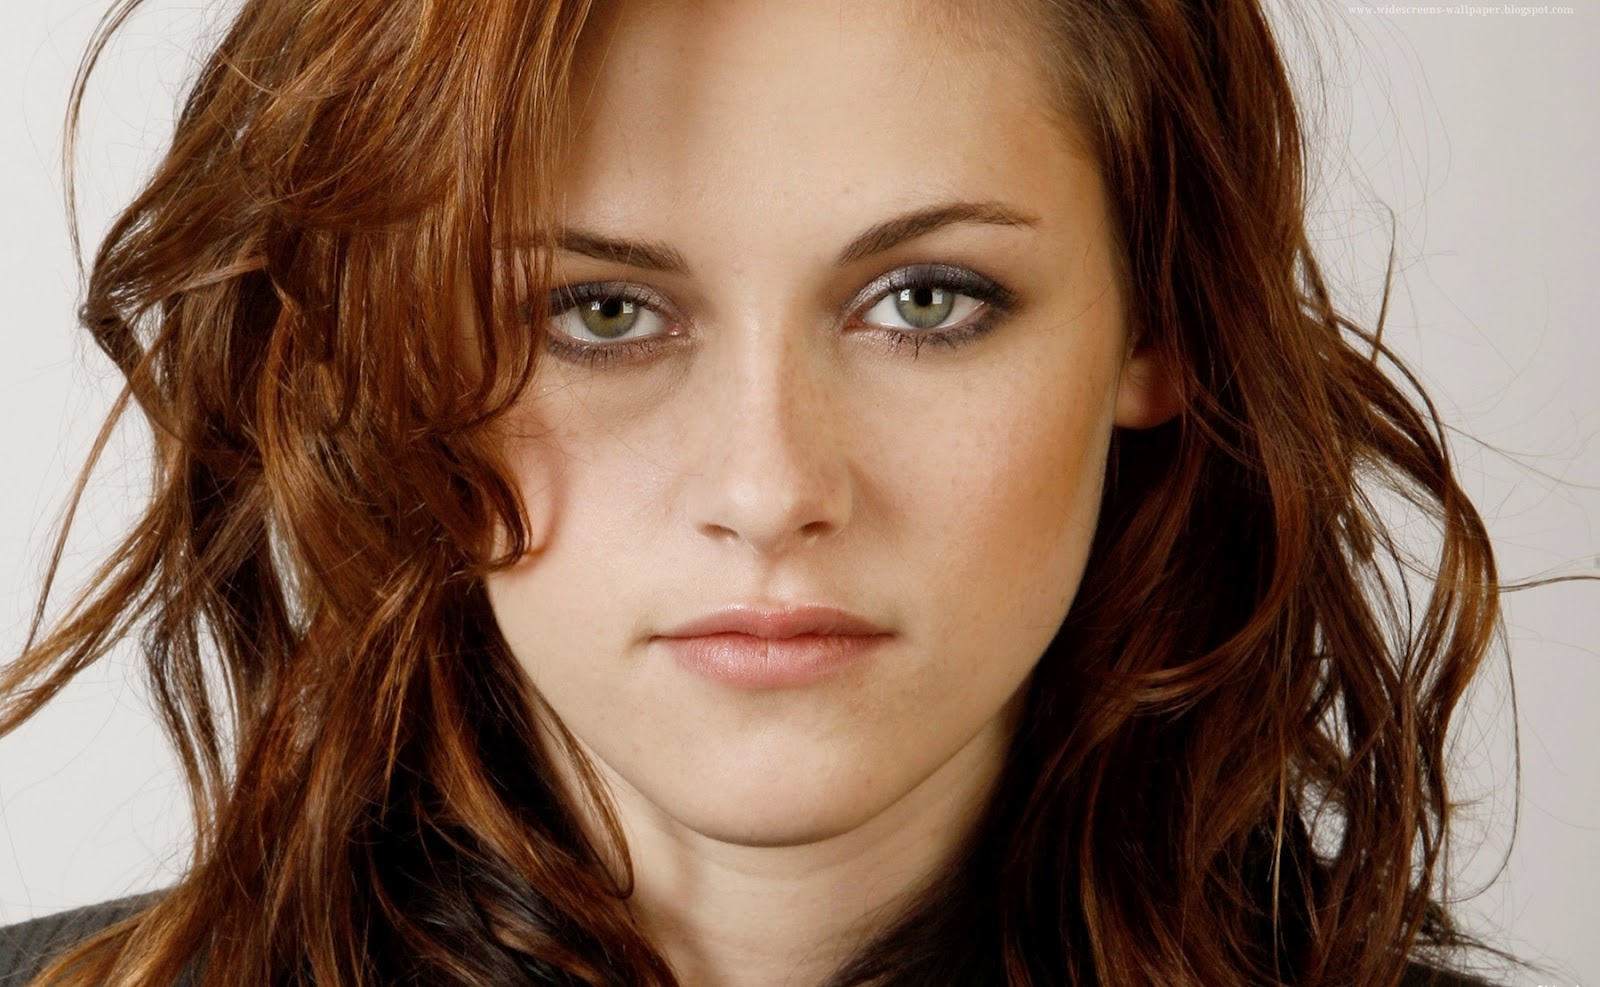 Download this Kristen Jaymes Stewart Wallpaper picture